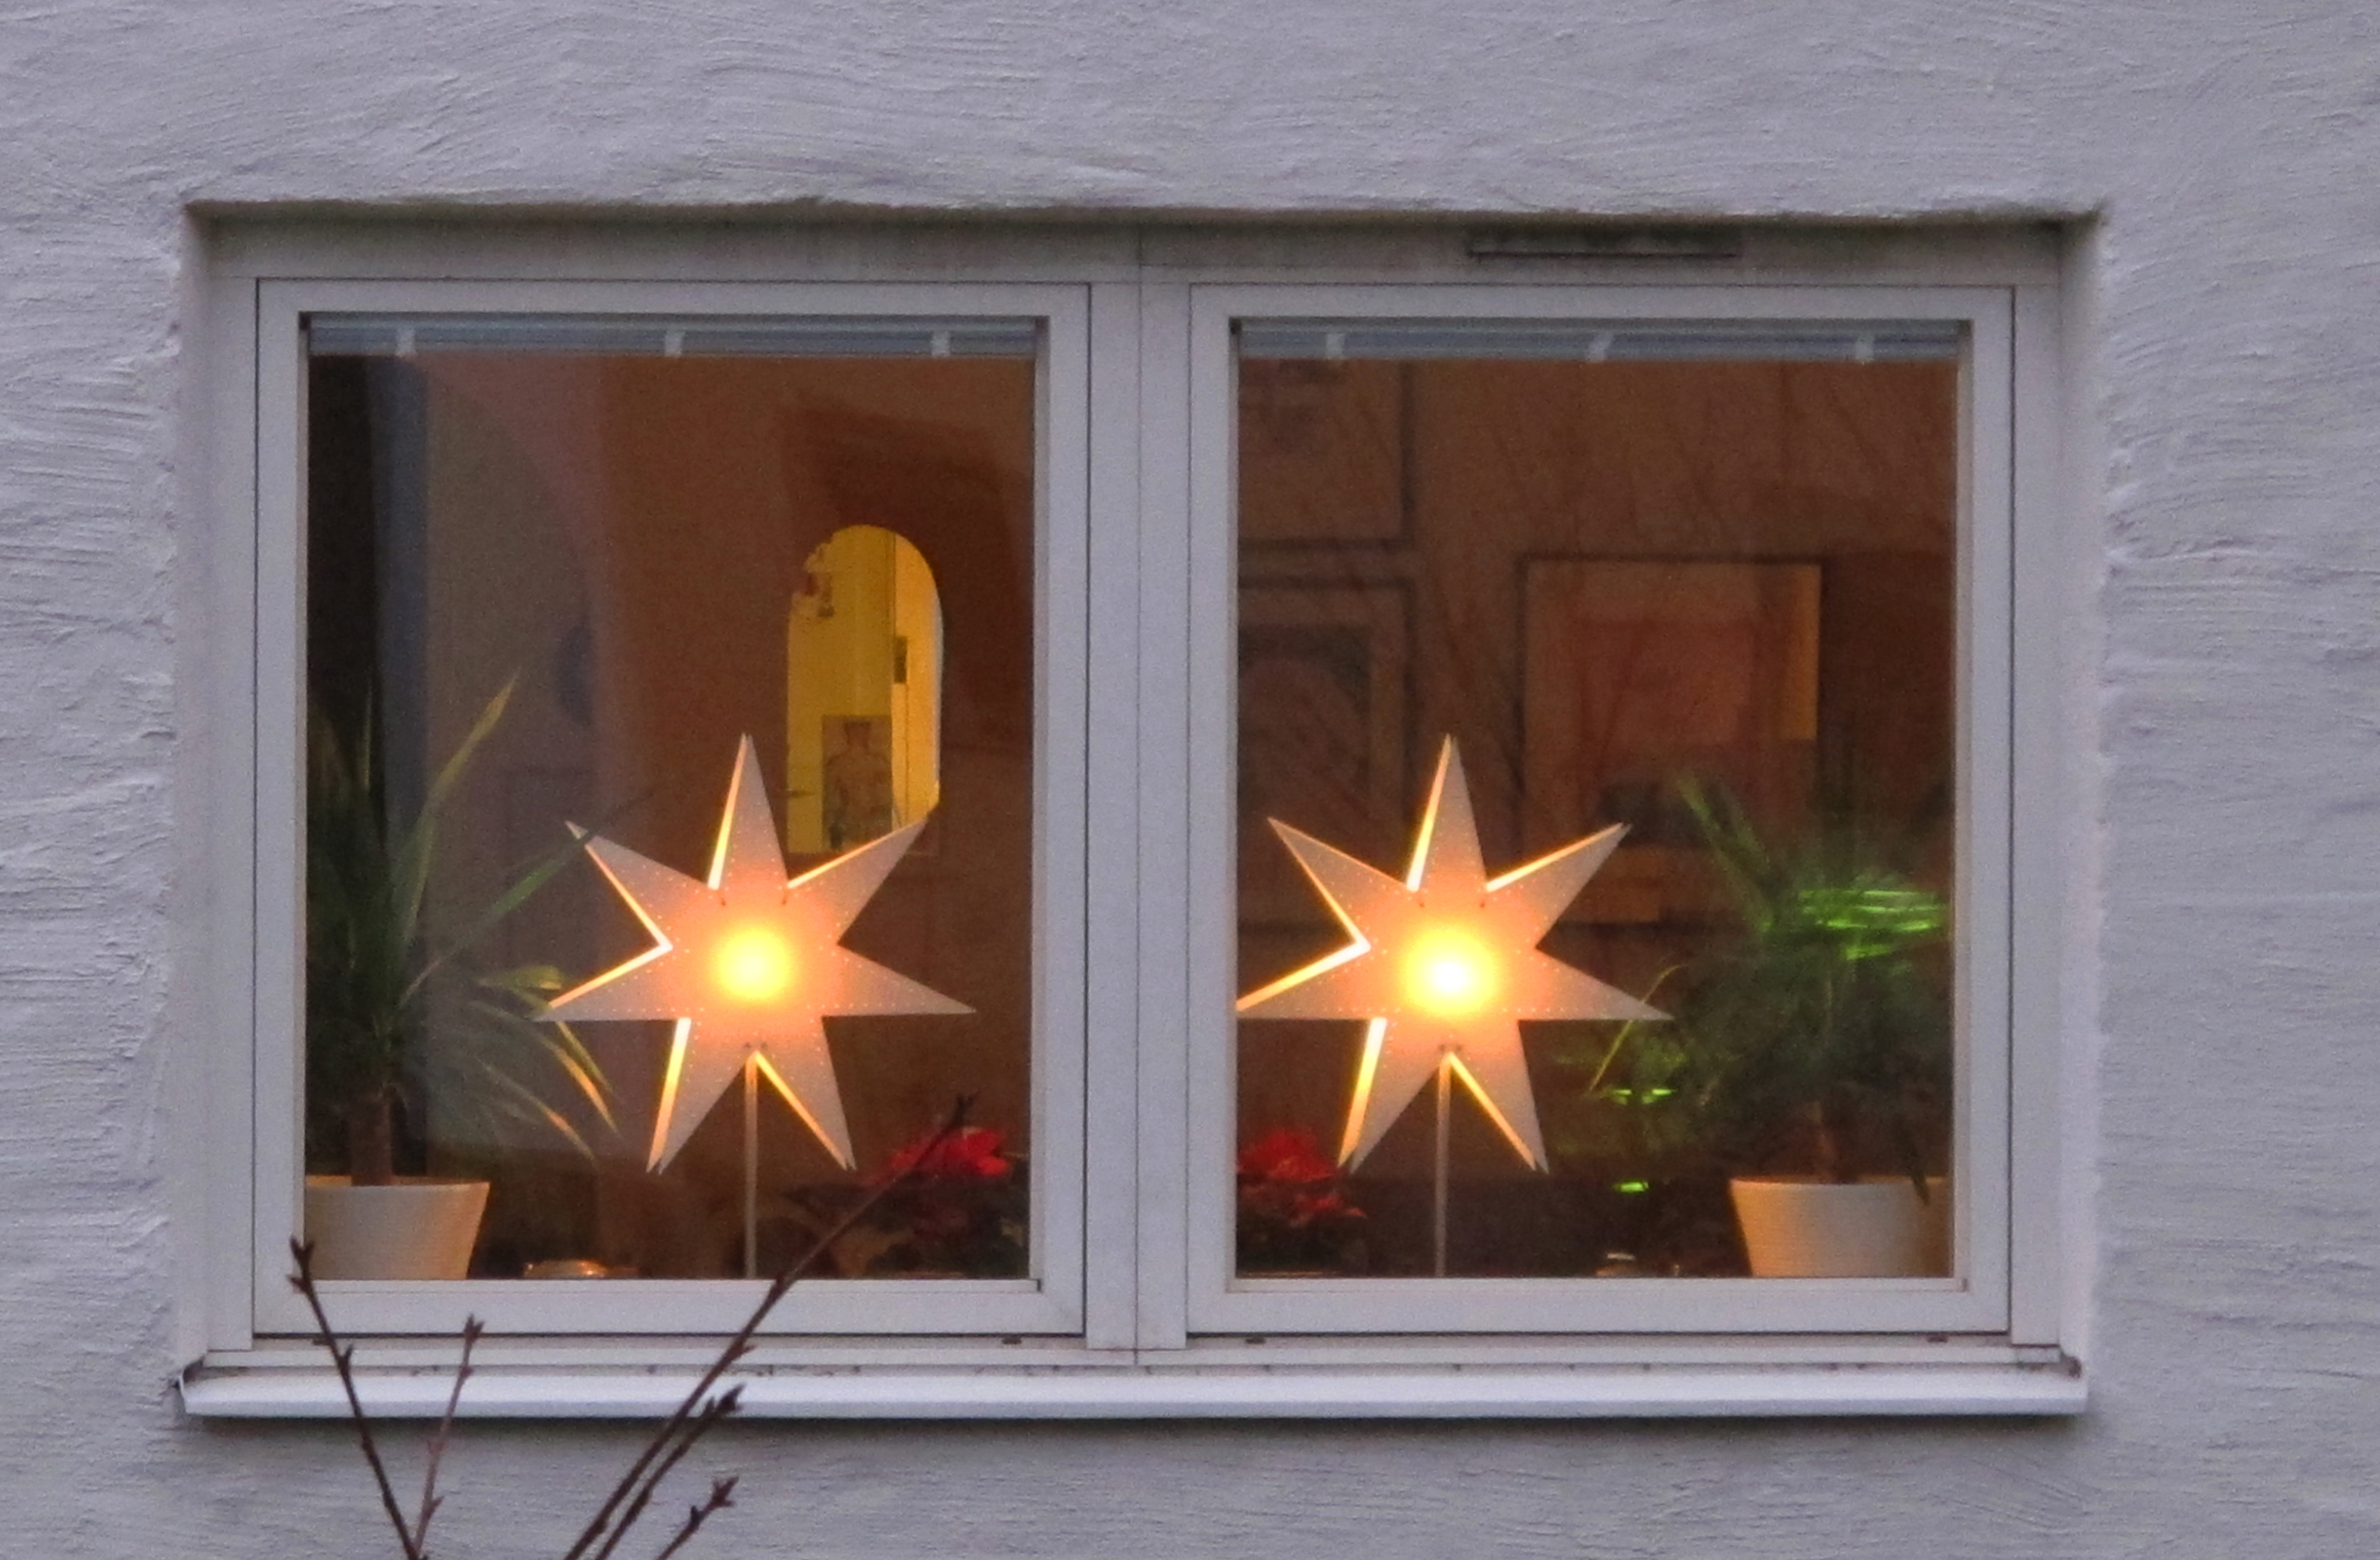 German christmas window decorations - Of Course The Holiday